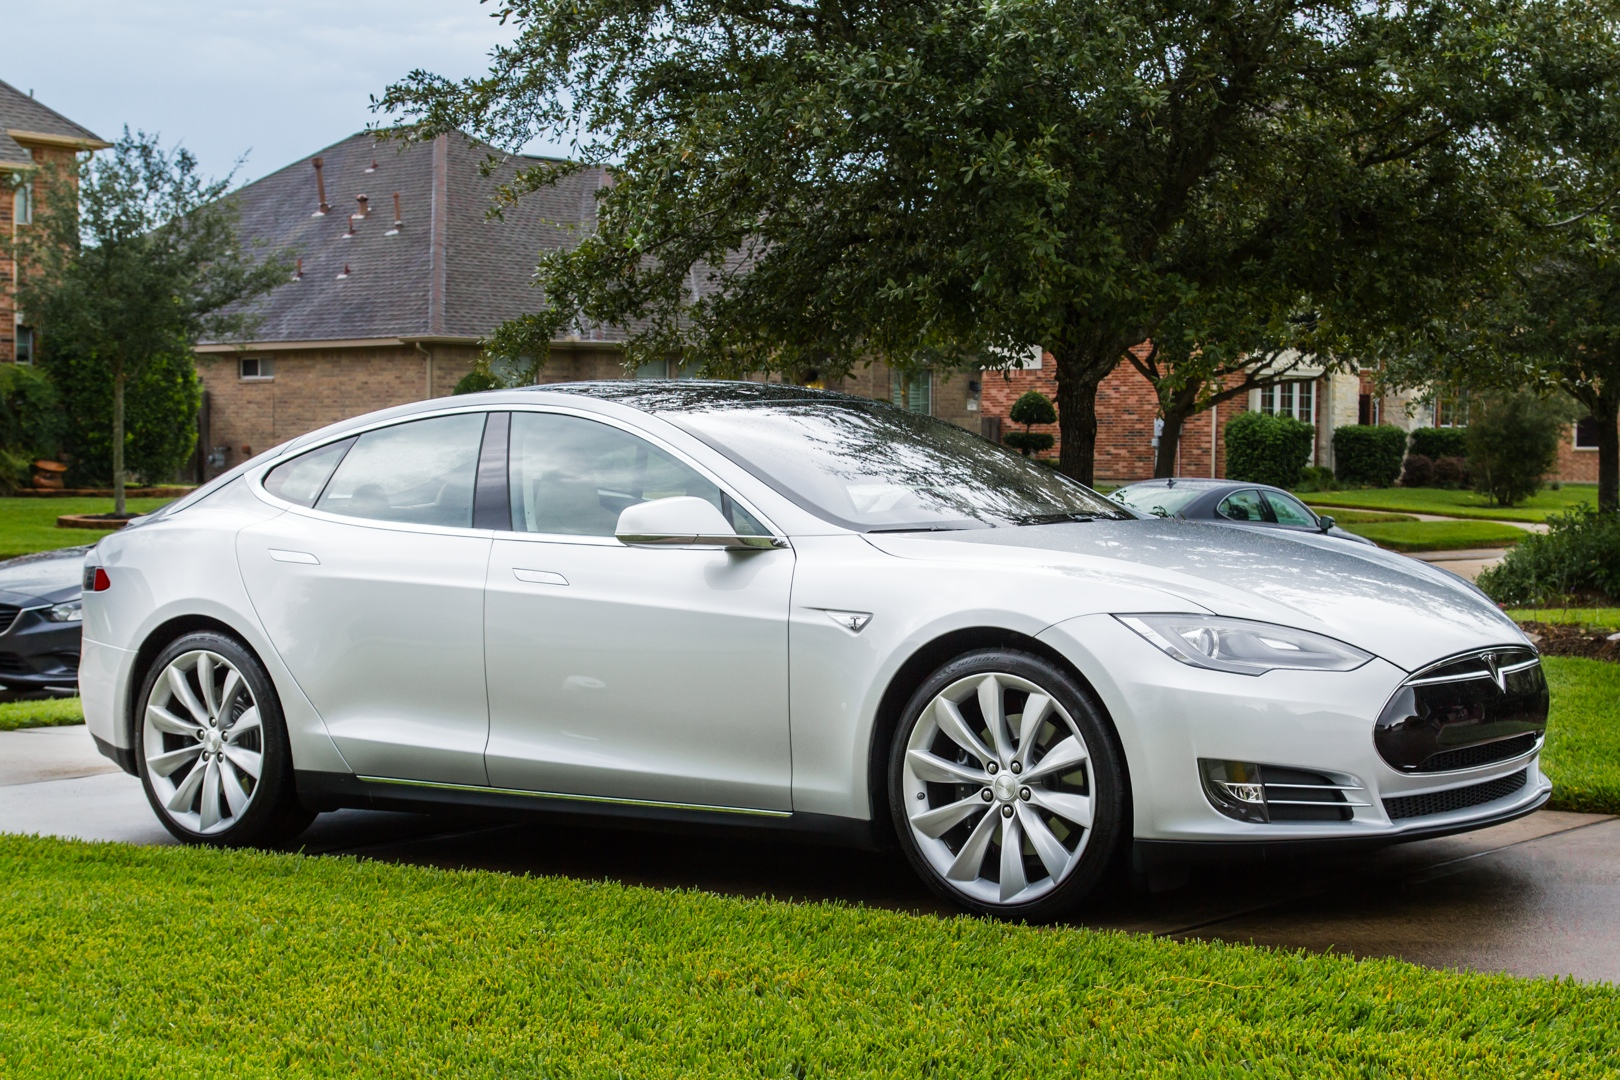 The Model S P85+ in my driveway, where I wish it had a permanent home.